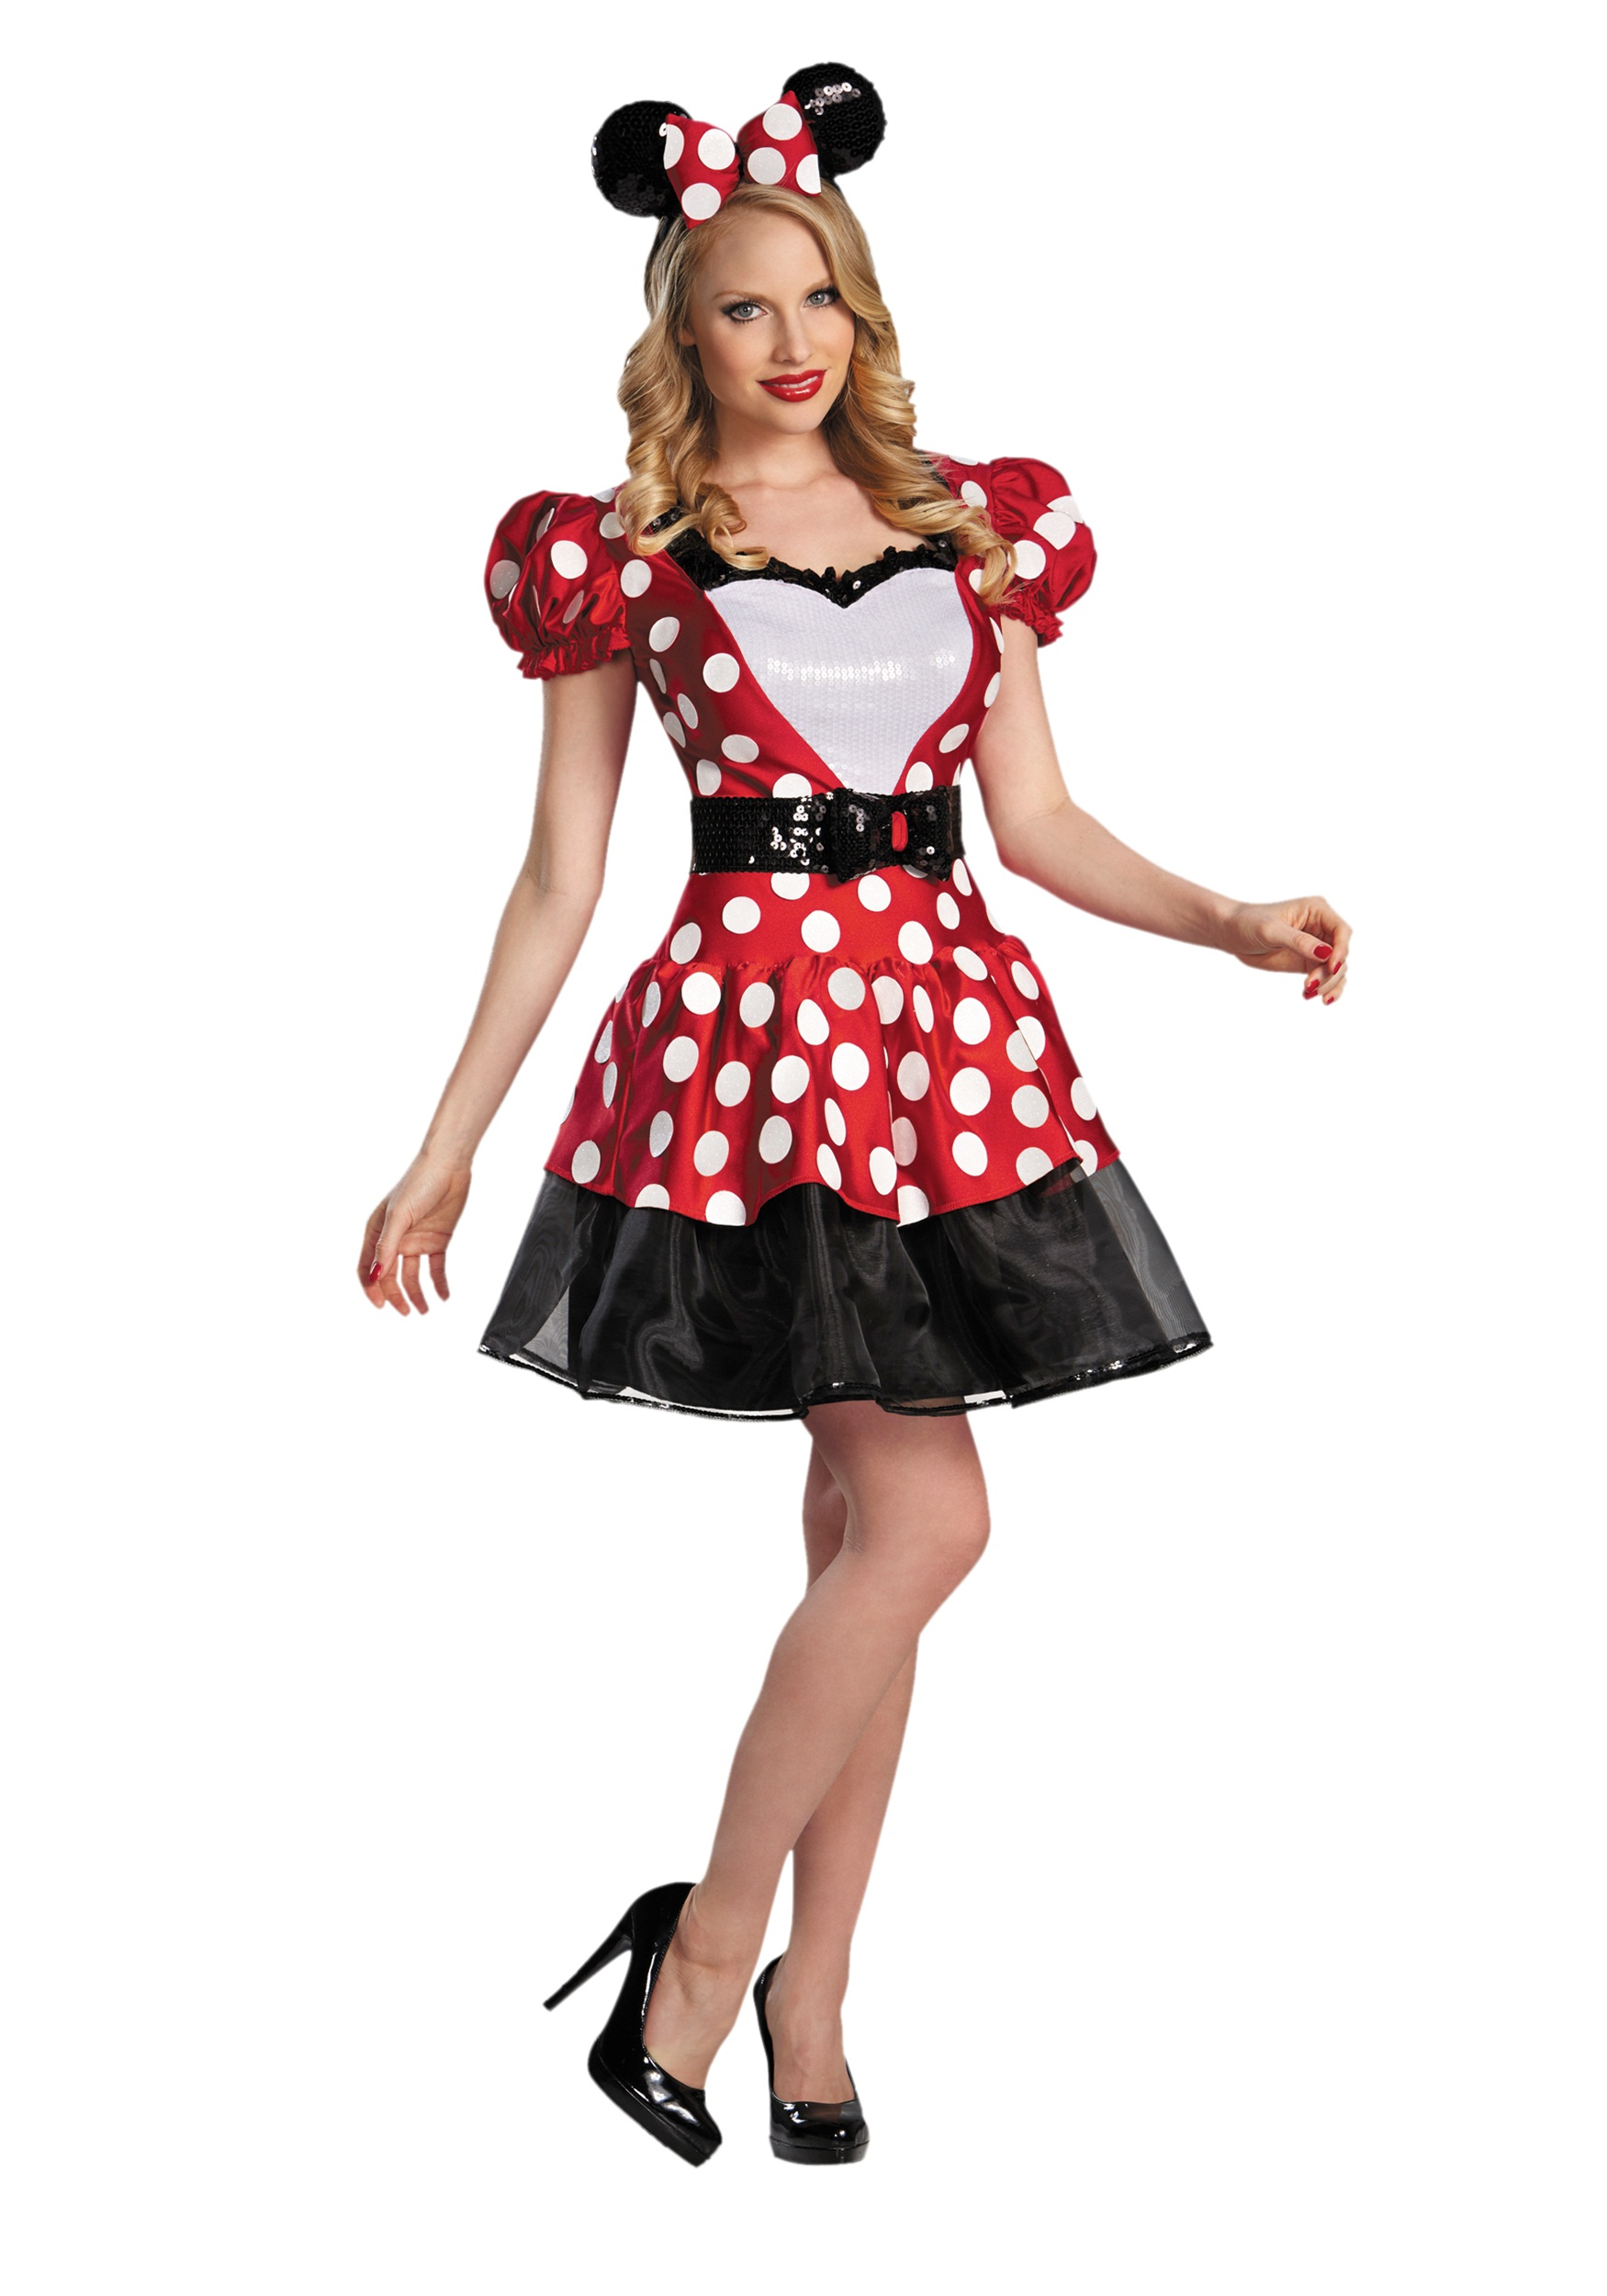 minnie mouse costume-halloween-costume-design-adults-men-girls-homemade-kids